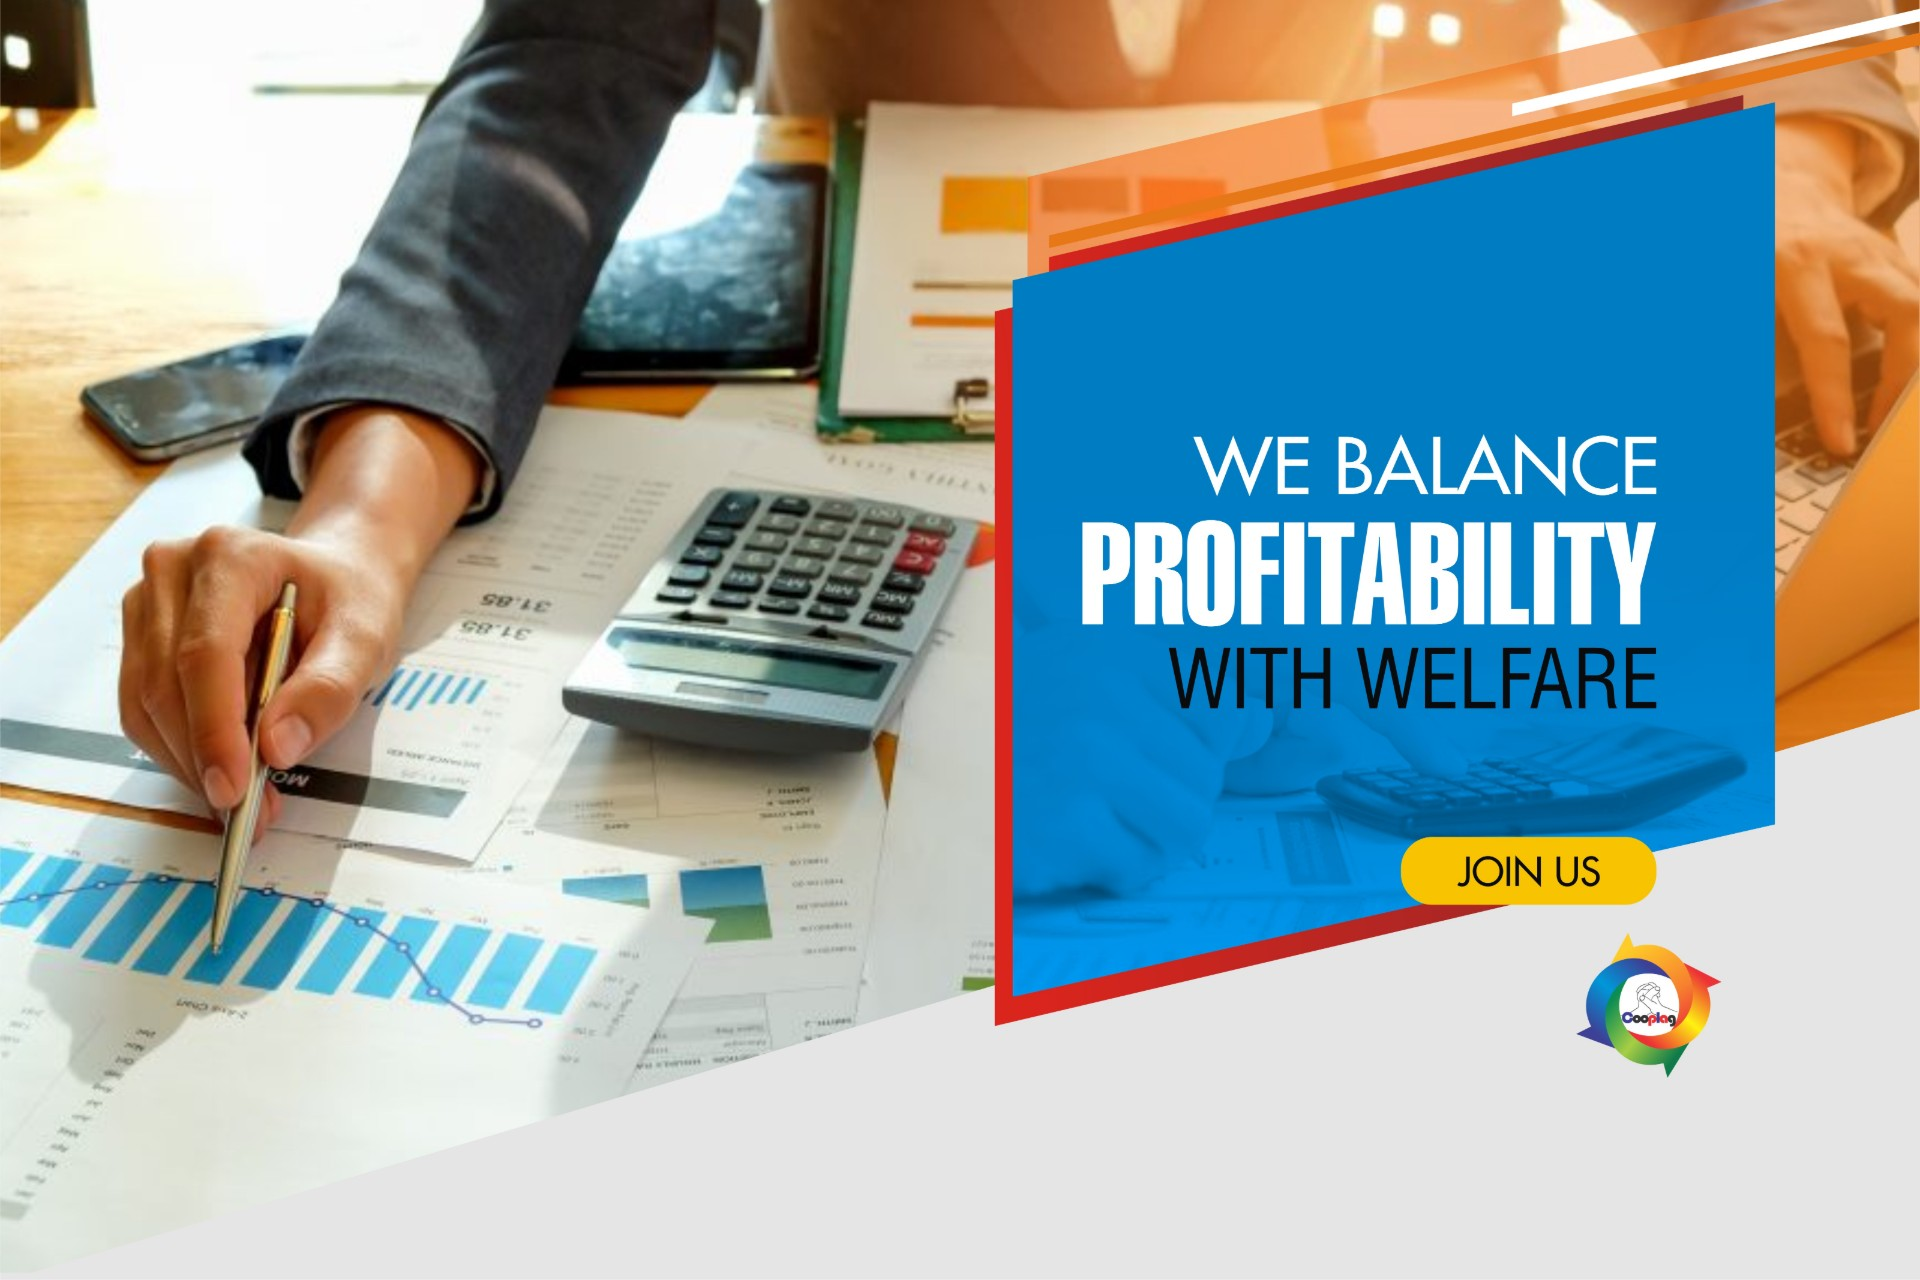 We Balance Profitability With Welfare.